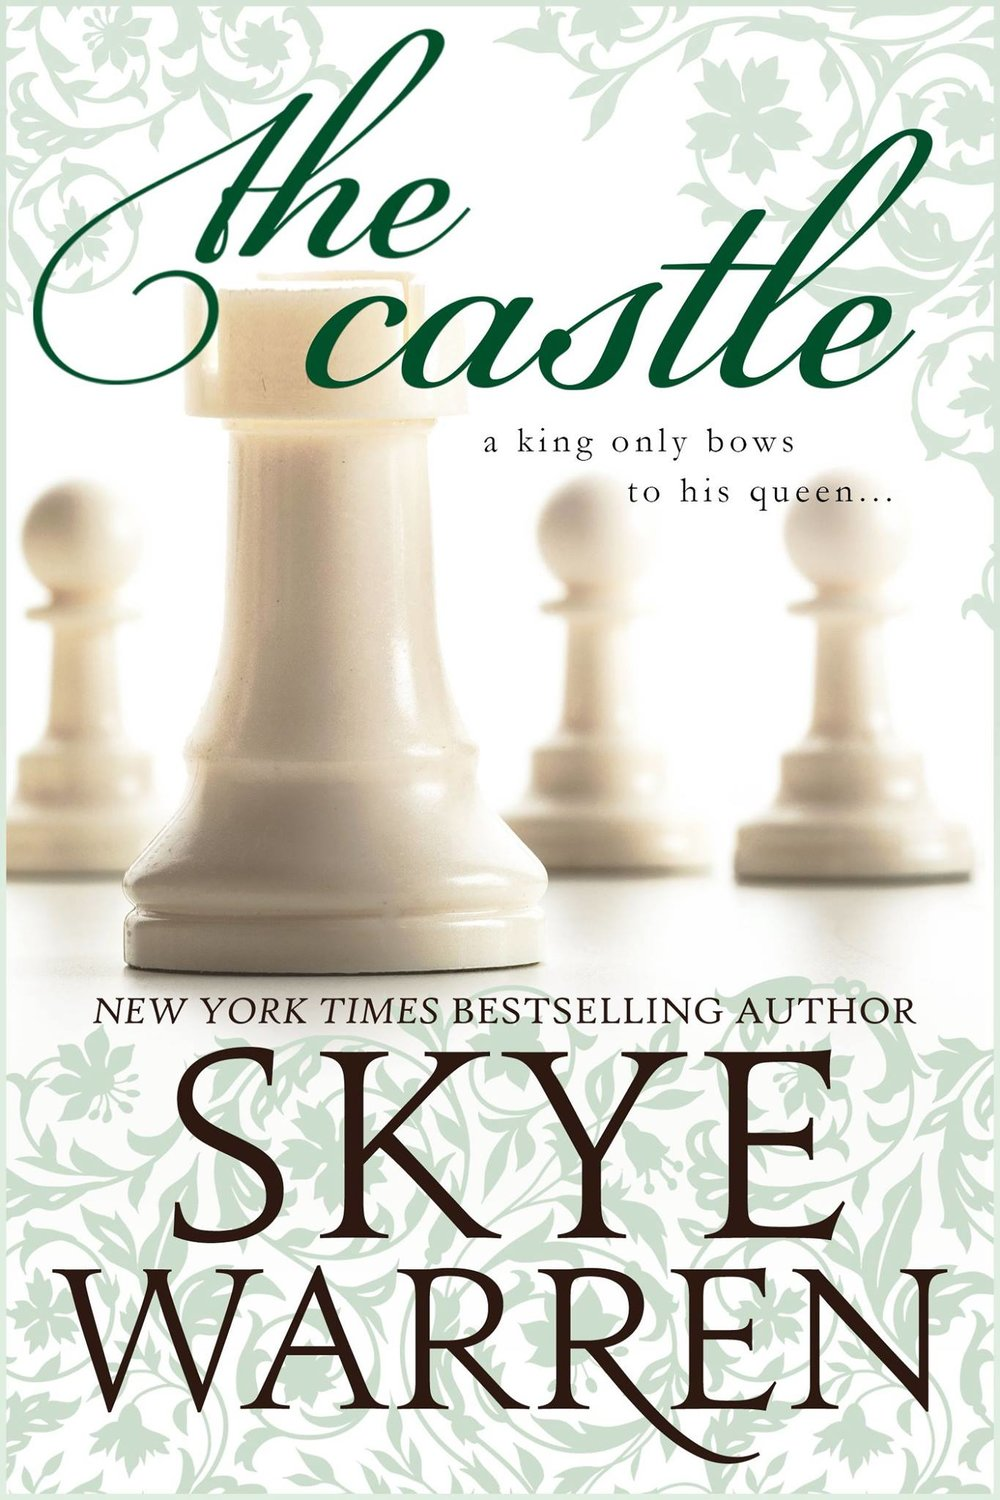 #3 The Castle    US: http://amzn.to/2feGdyz   UK:  http://amzn.to/2k58Wnp  CA:  http://amzn.to/2kGG2sG  AU:  http://amzn.to/2kAuubA  B&N:  http://bit.ly/2l9pcXN  Kobo:  http://bit.ly/2kuTST4  iBooks:  http://apple.co/2klcCRA